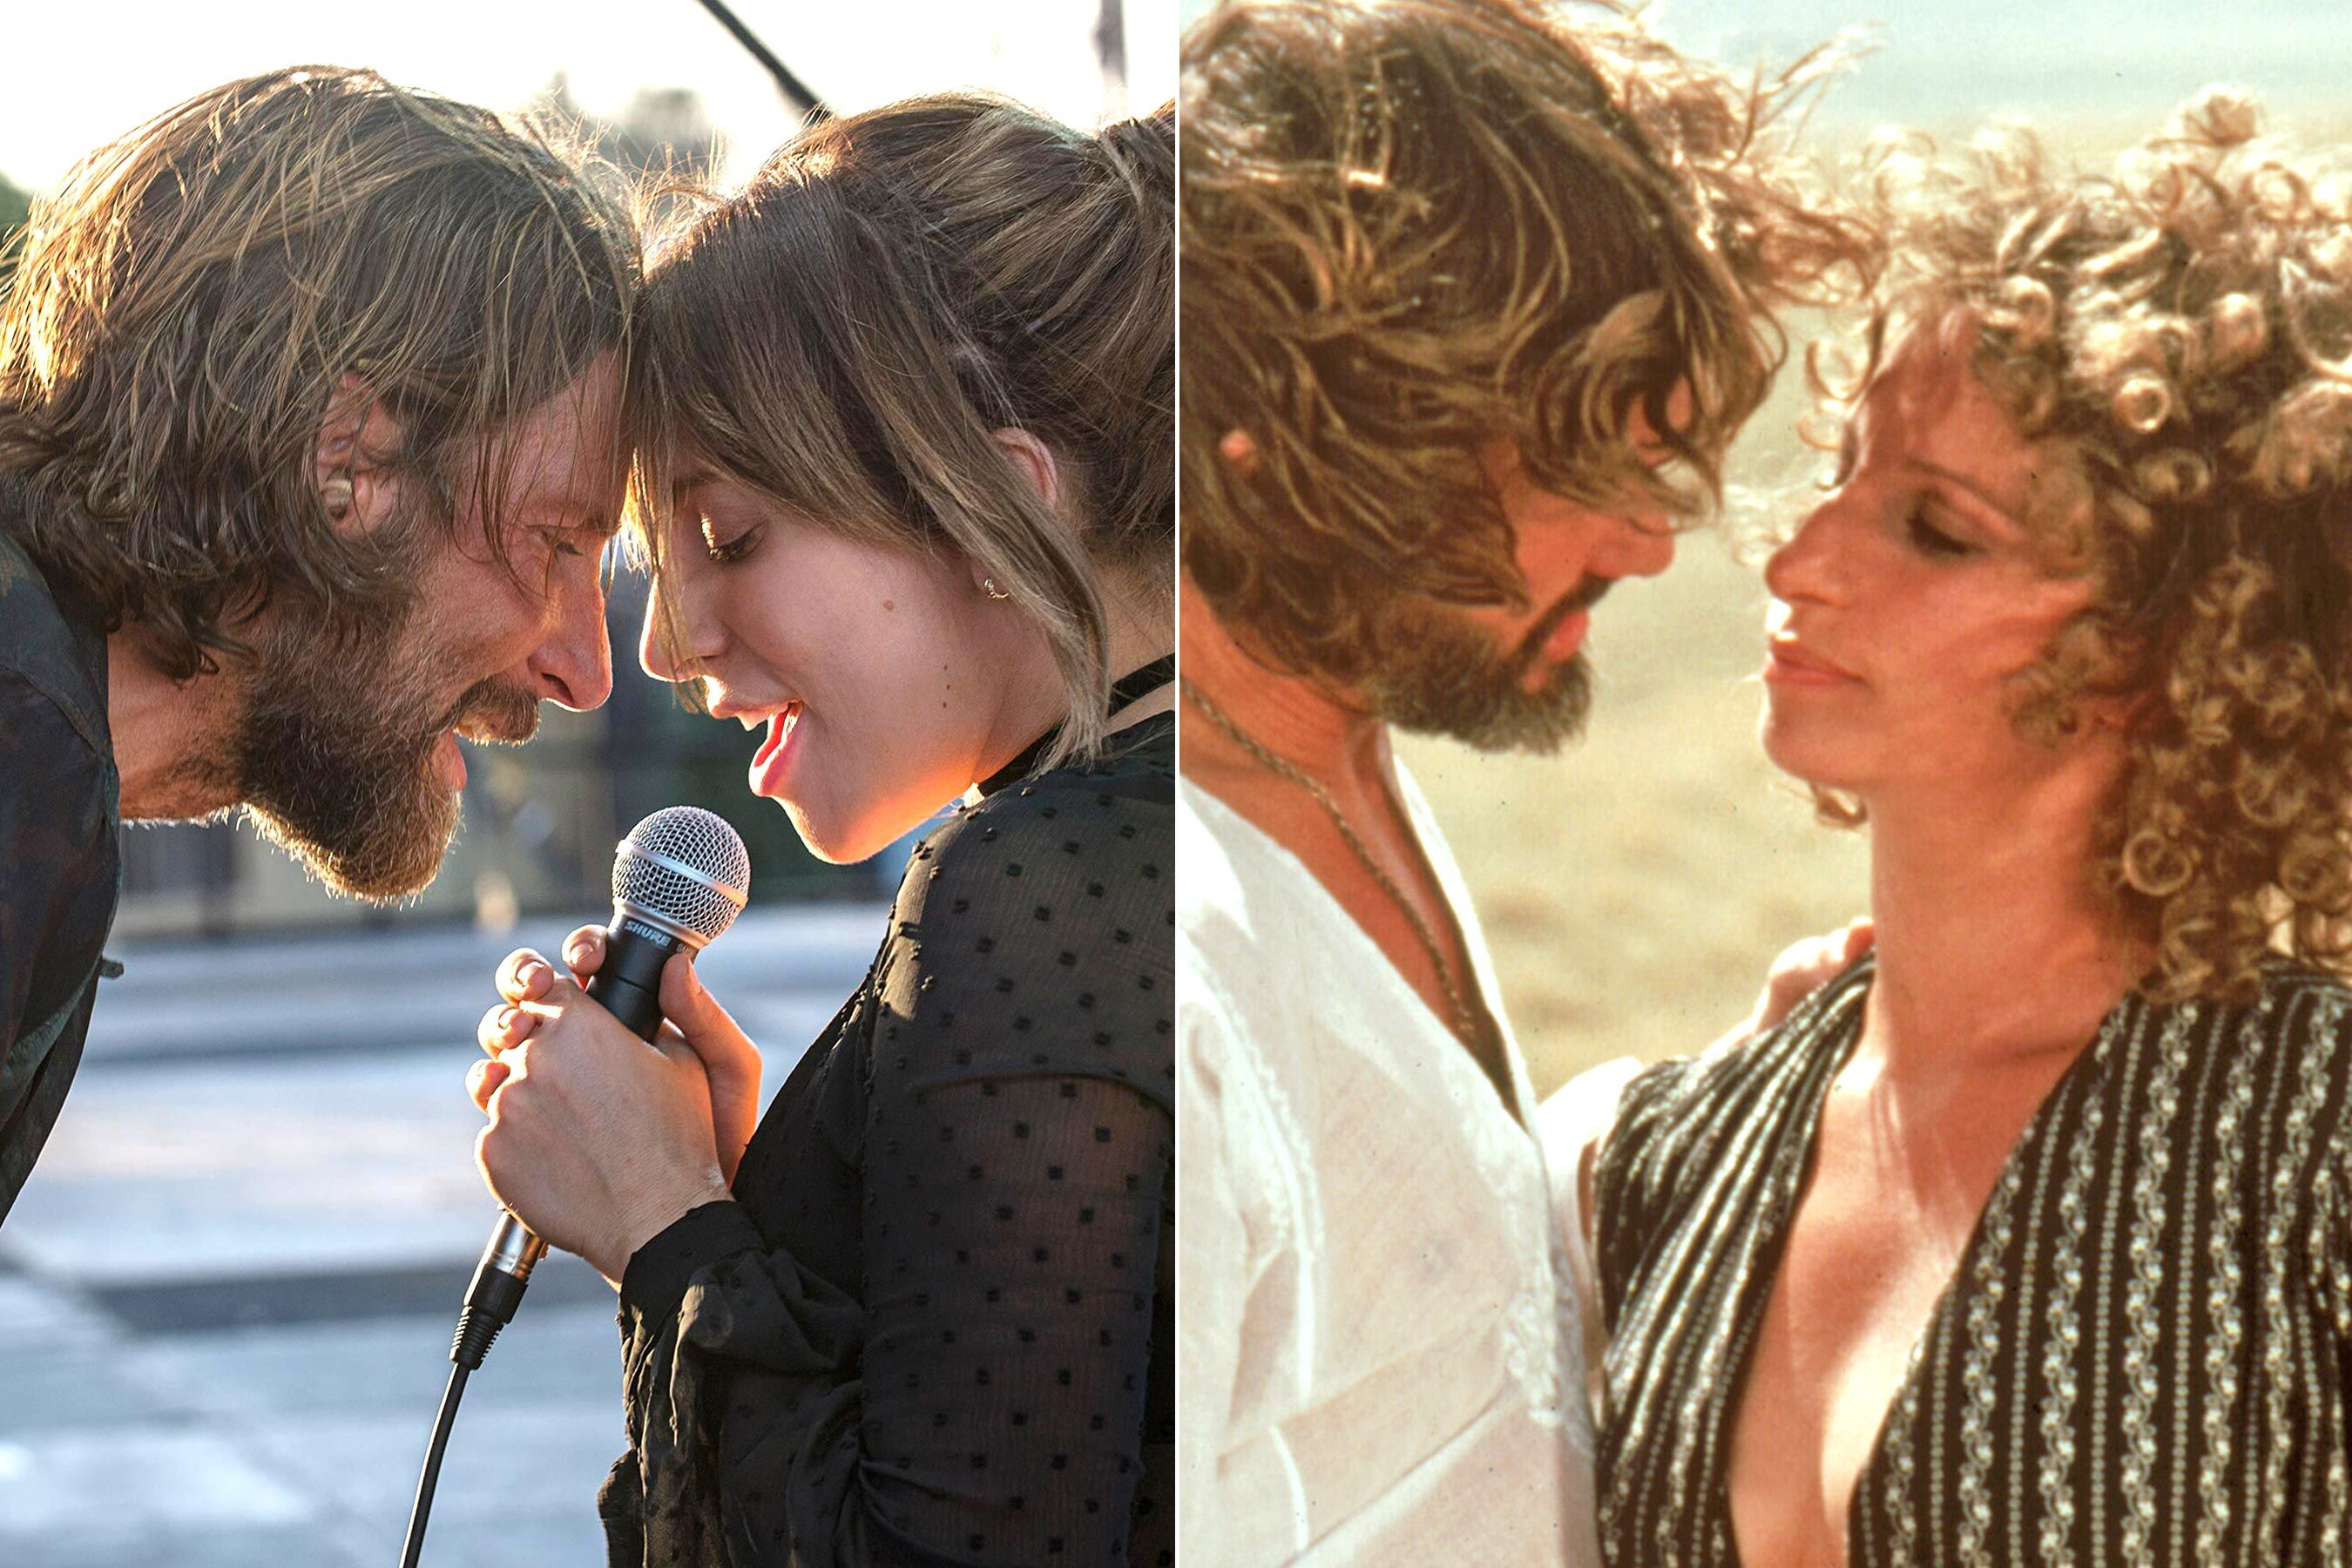 Barbra Streisand And Kris Kristofferson Visited The Set Of A Star Is Born A Star Is Born Kris Kristofferson Children Kris Kristofferson